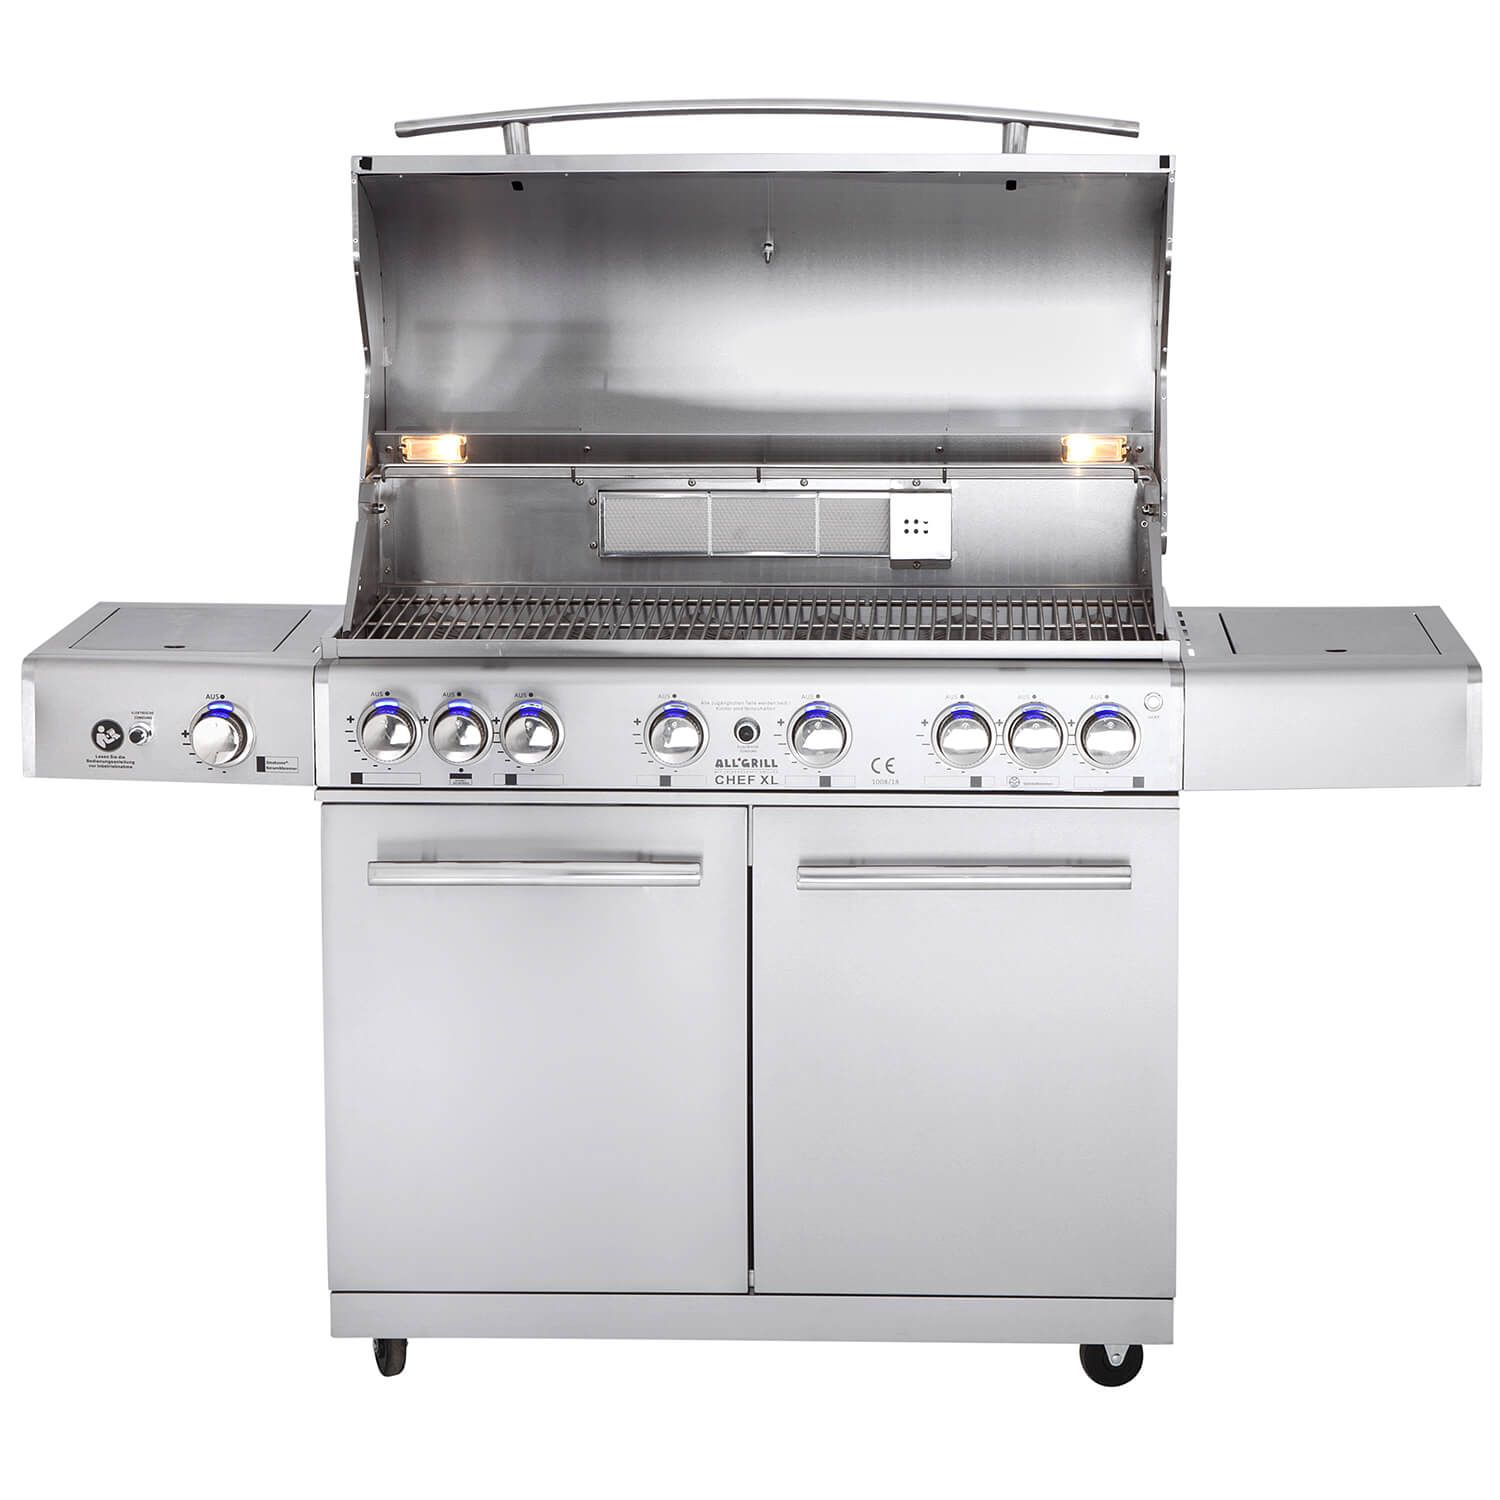 Top Line All Grill Chef Xl Mit Air System Volledelstahl Gas Grill Mit All Grill Air System Gesamtleistung 3 Edelstahl Grill Gasgrill Edelstahl Gasgrill